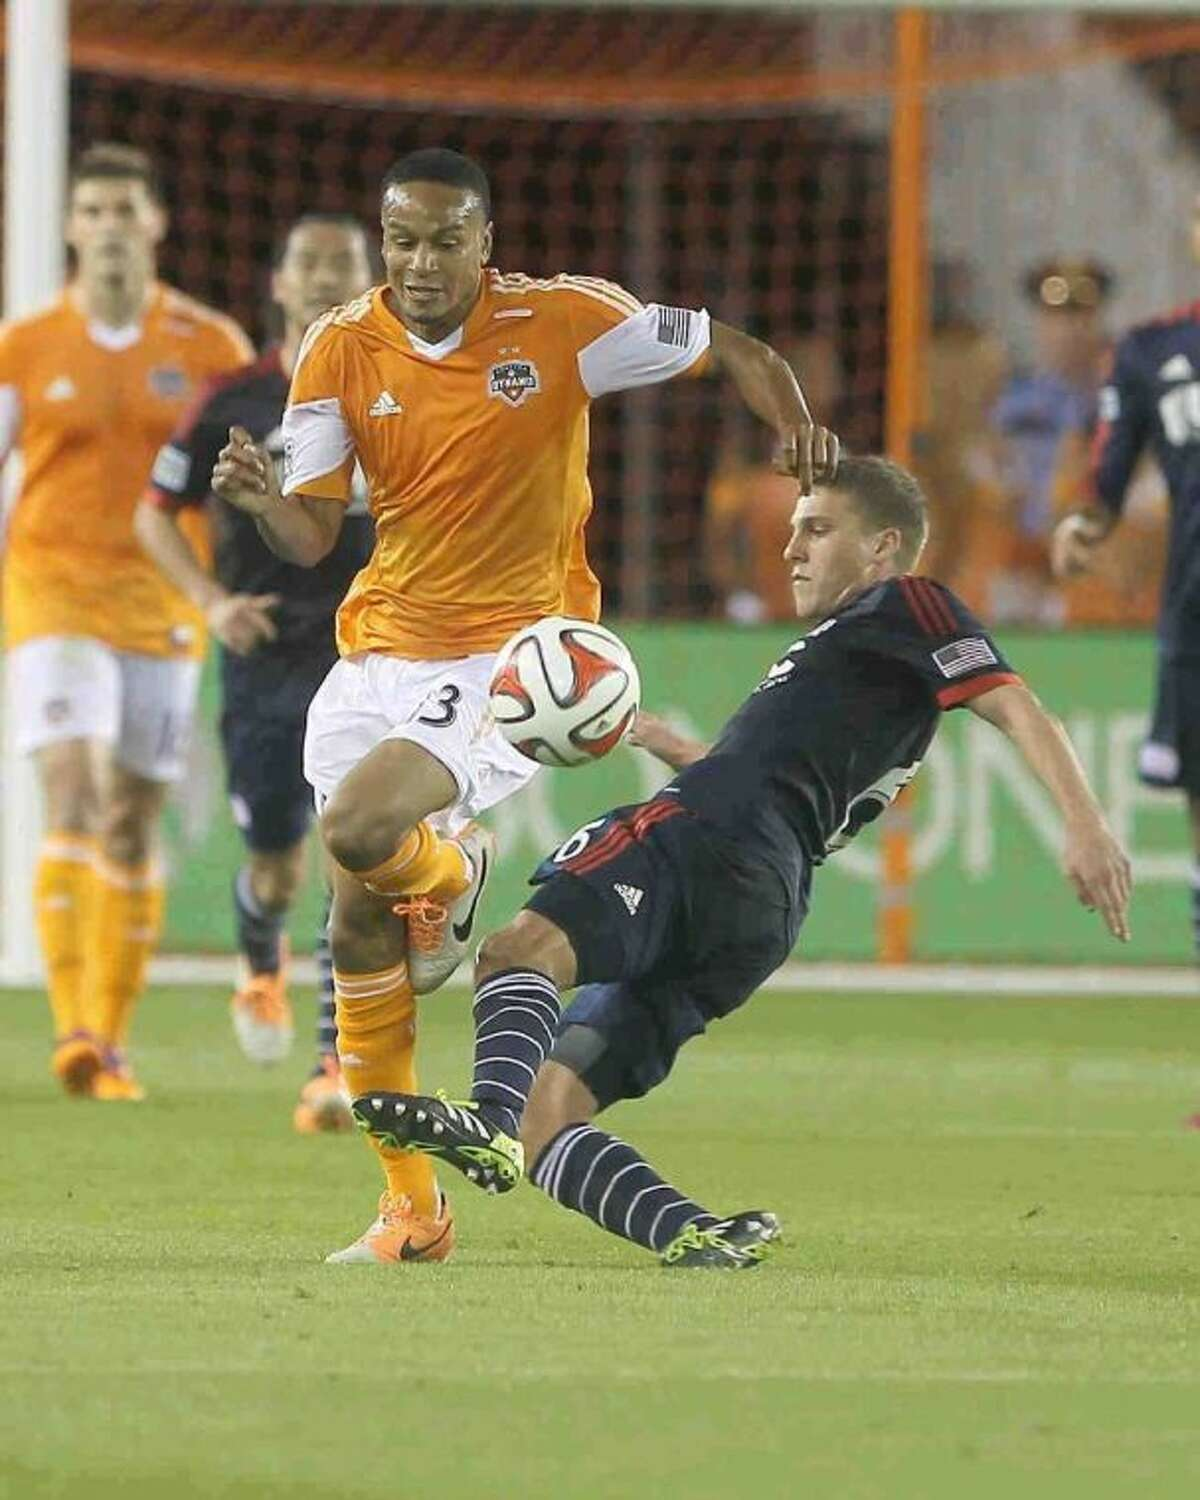 New England Revolution midfielder Scott Caldwell (6) goes for the ball against Houston Dynamo midfielder Ricardo Clark (13) during the first half of an MLS soccer game Saturday. The Dynamo won 4-0.